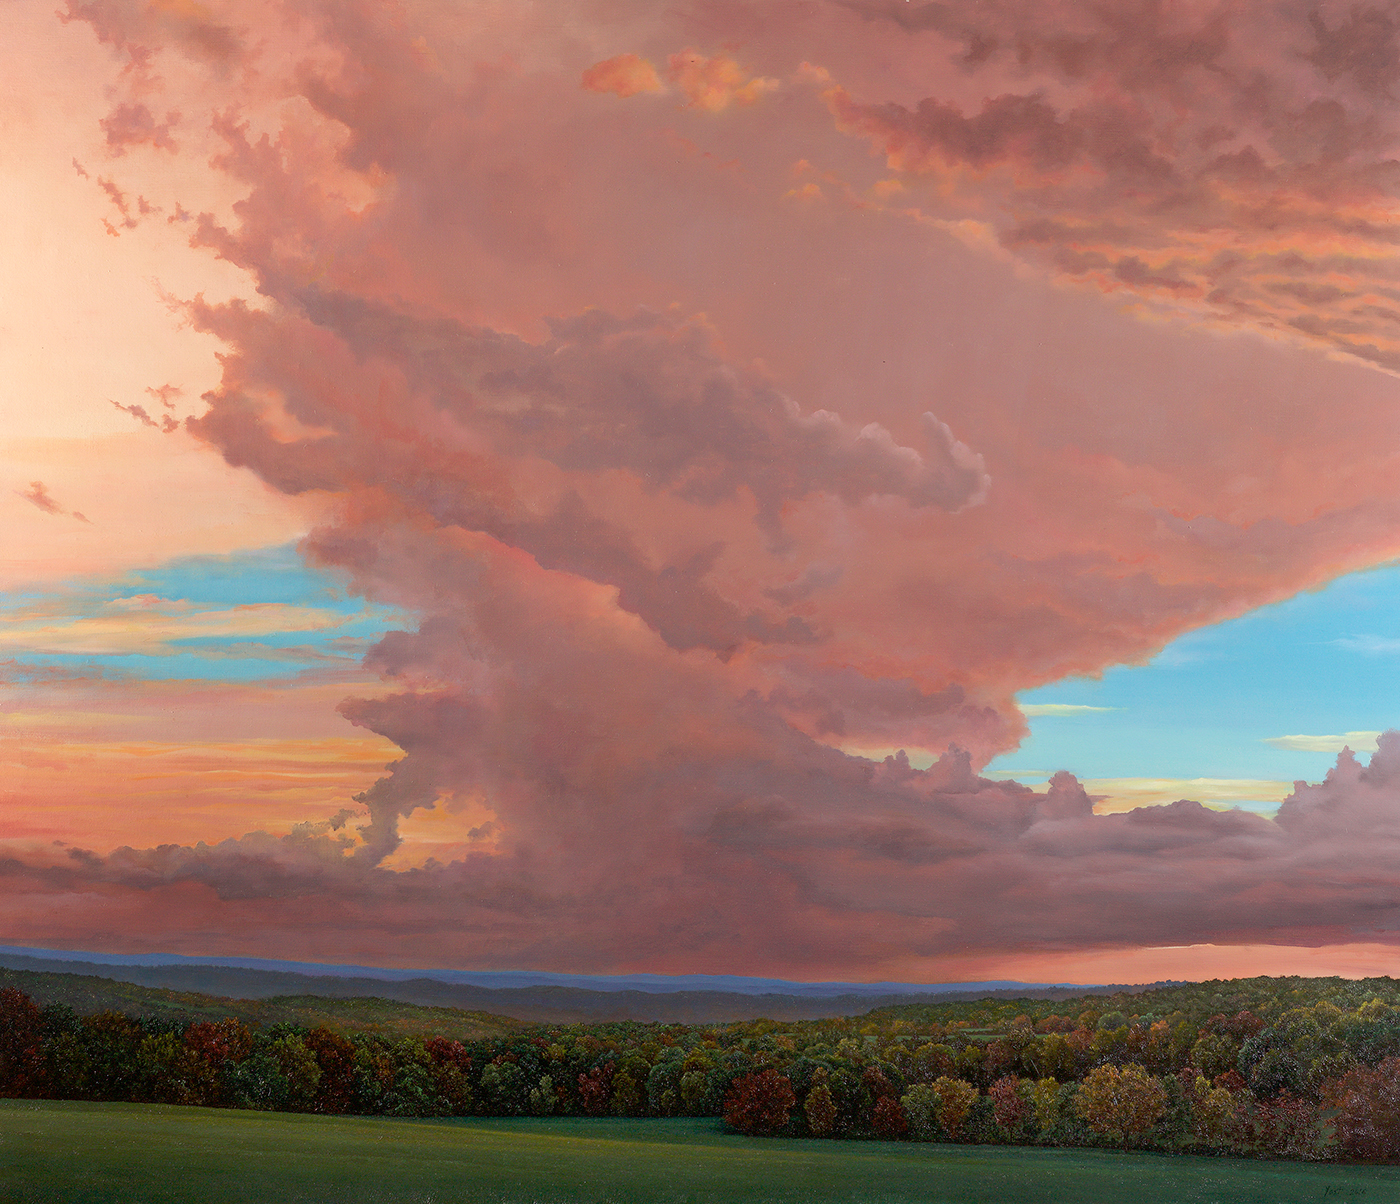 Yost-Storm Approaching Painter Ridge, 2016